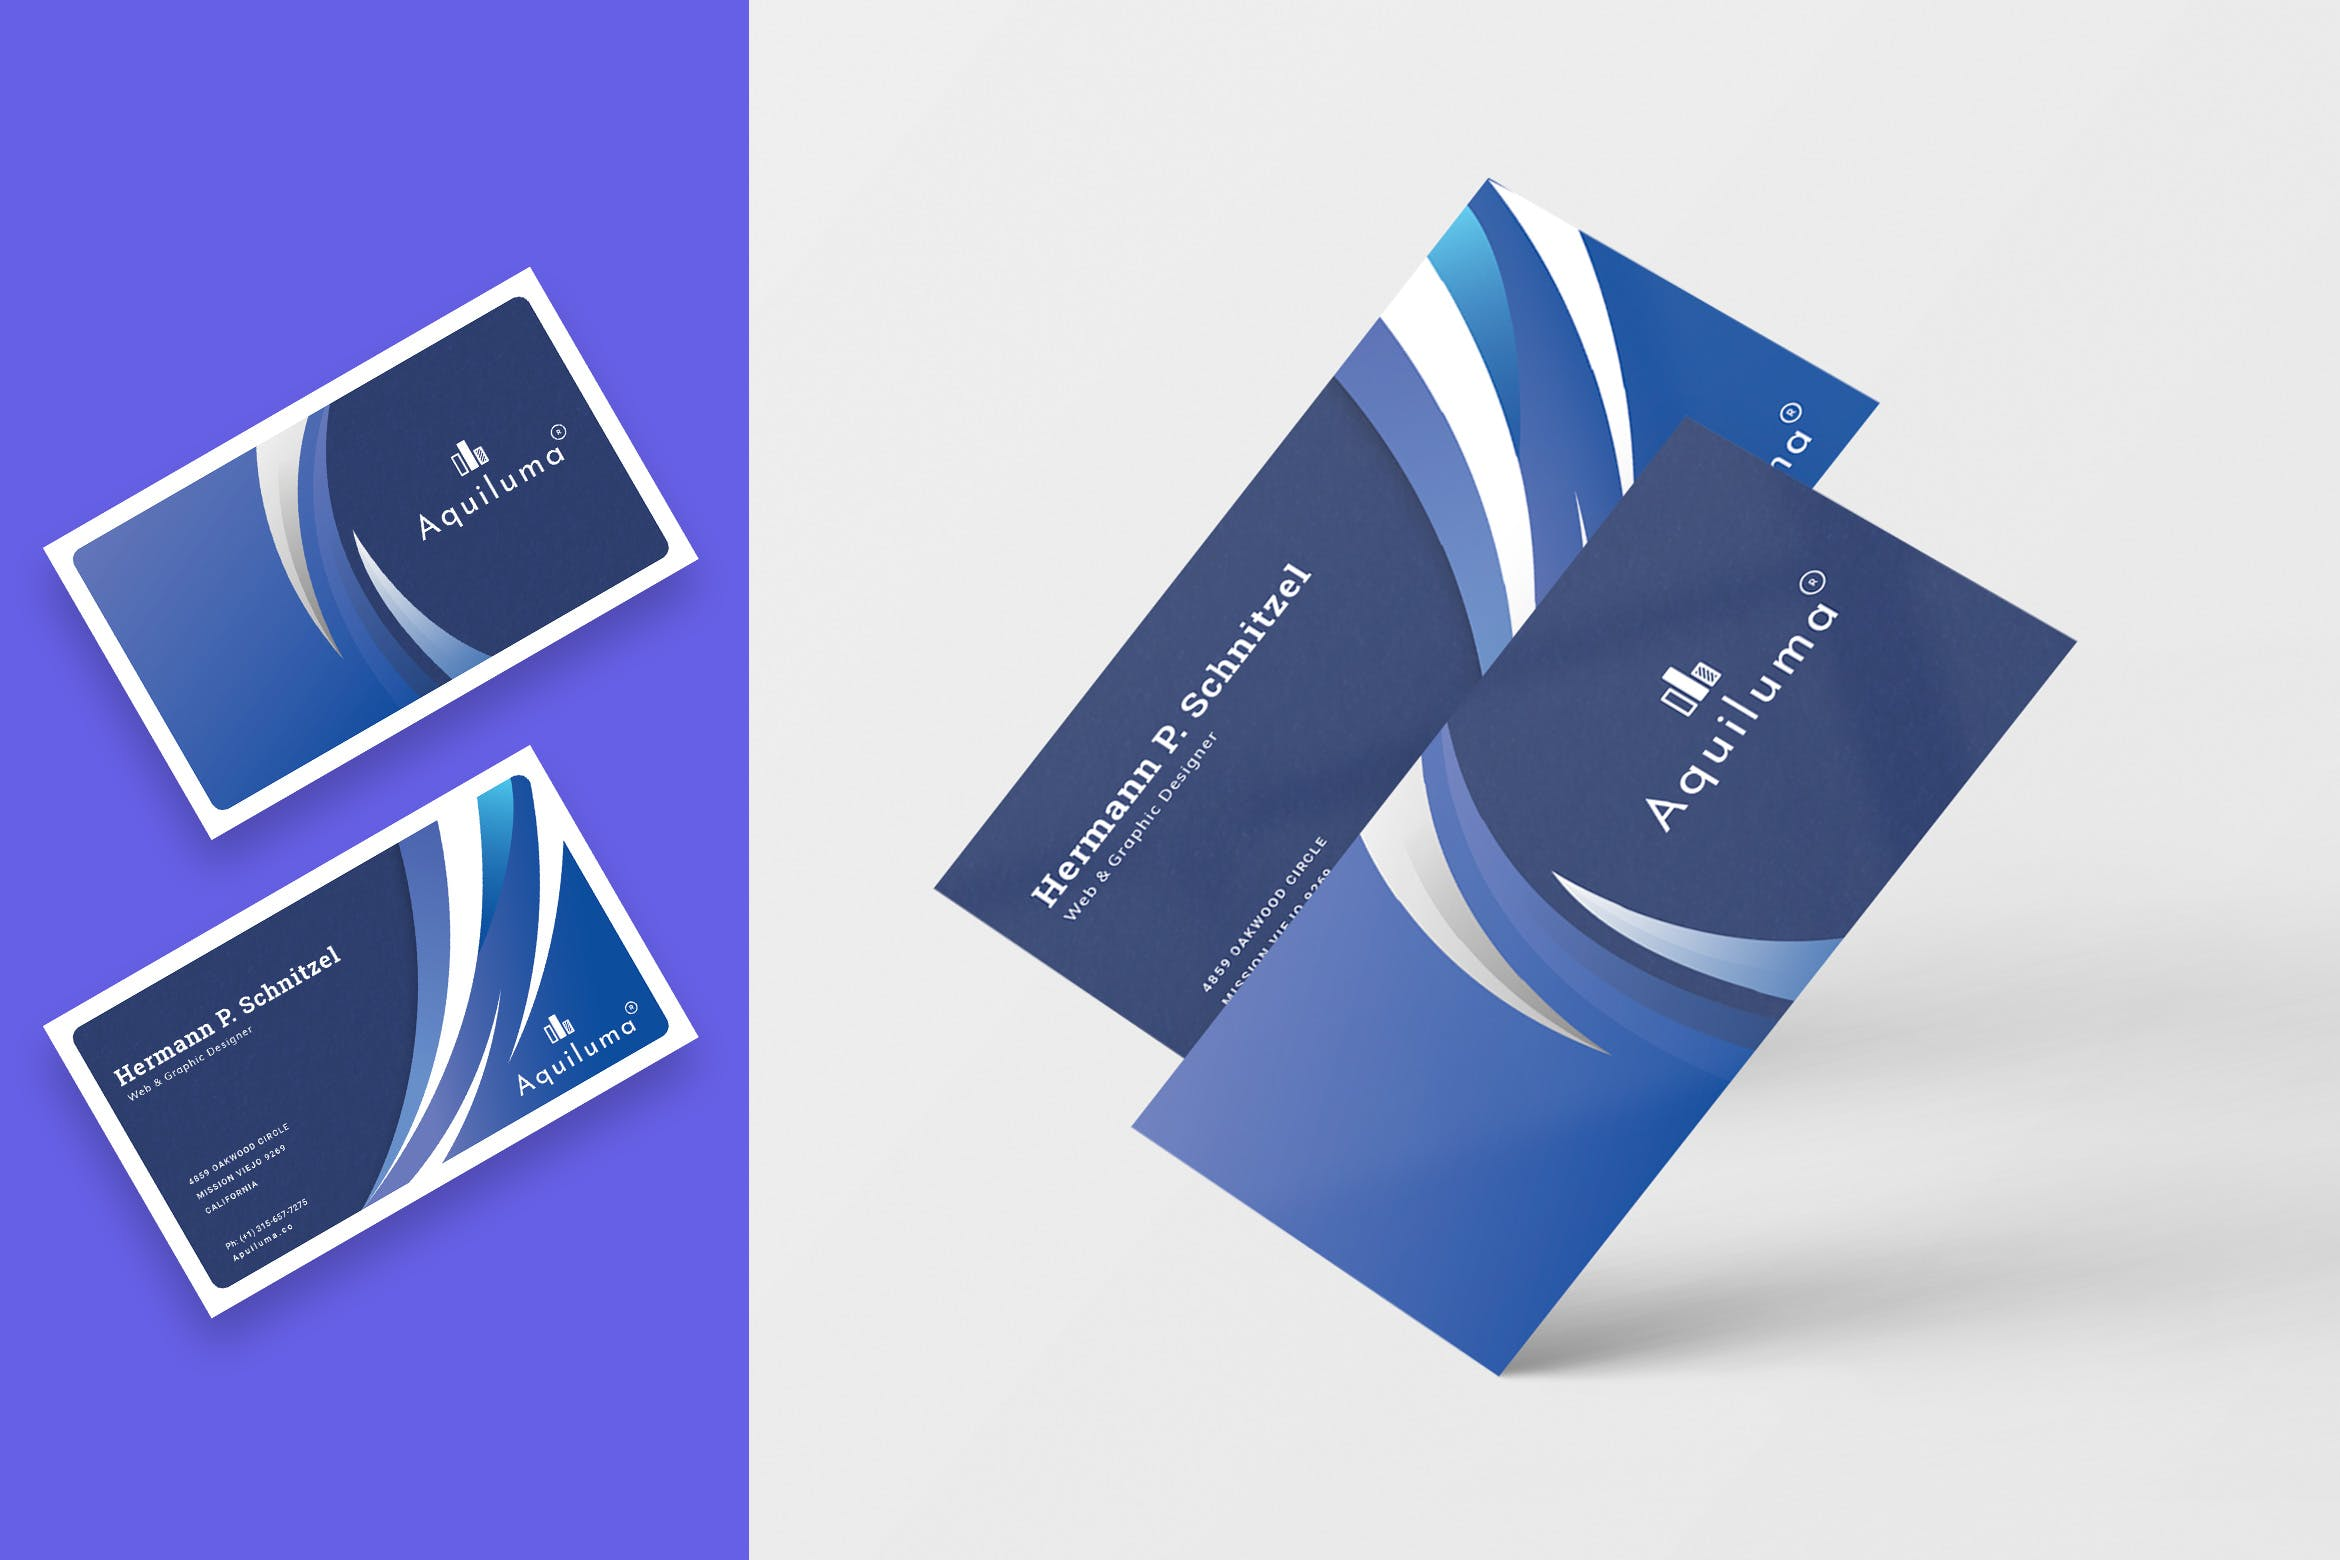 <span class='yzk_title_96493'>抽象几何图形企业名片设计模板 Abstract Business Card Template</span>